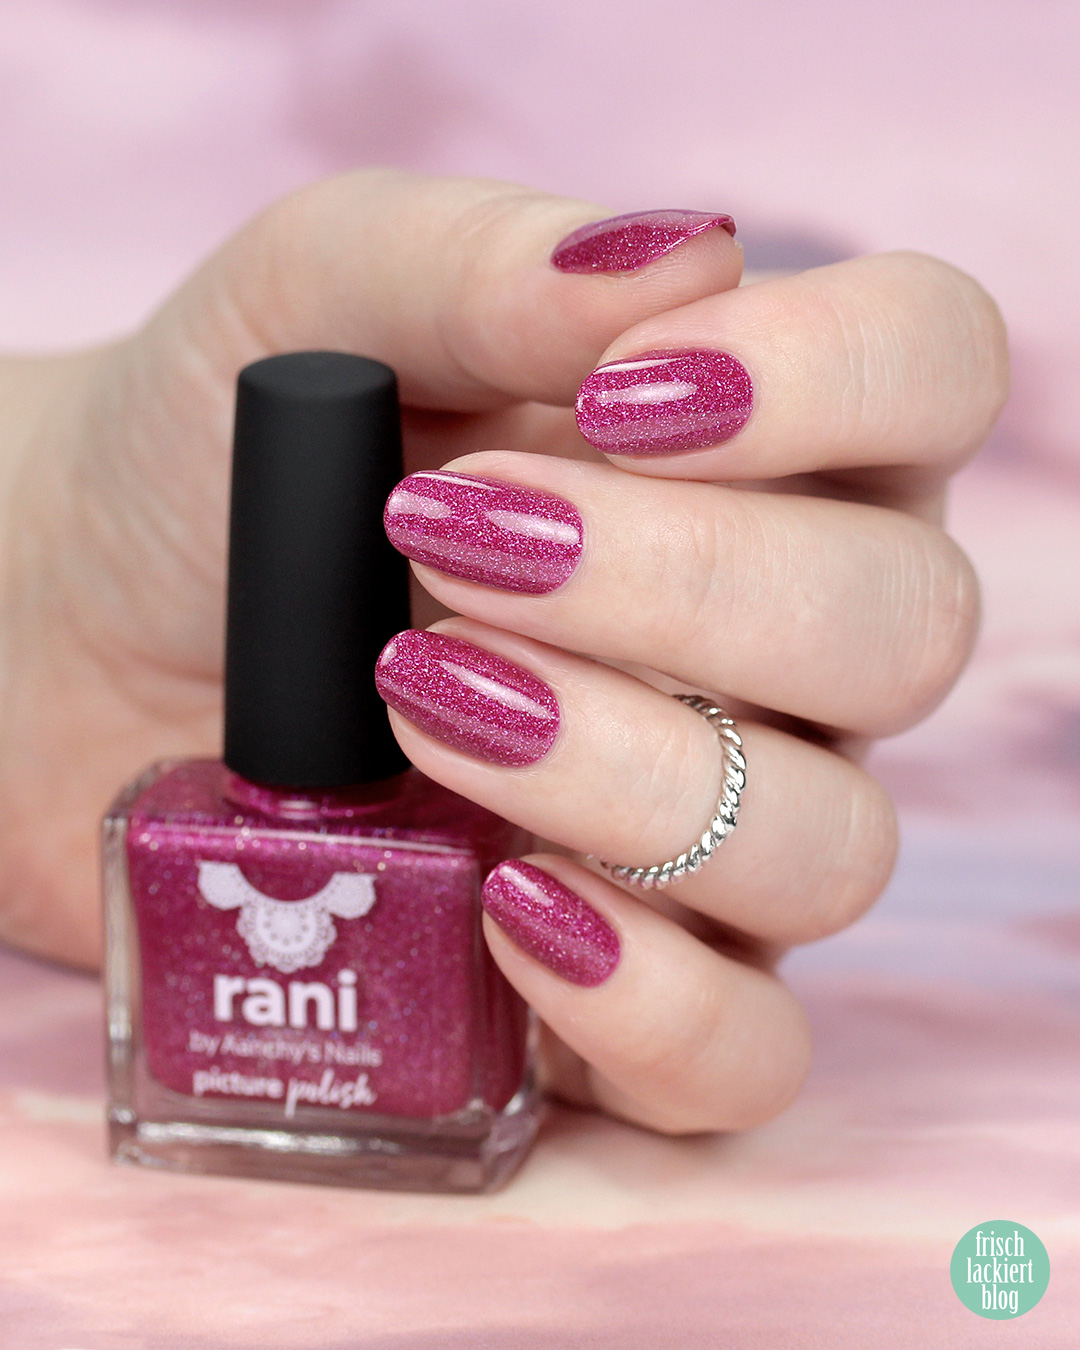 Picture Polish Rani – Nail Polish Swatch by frischlackiert